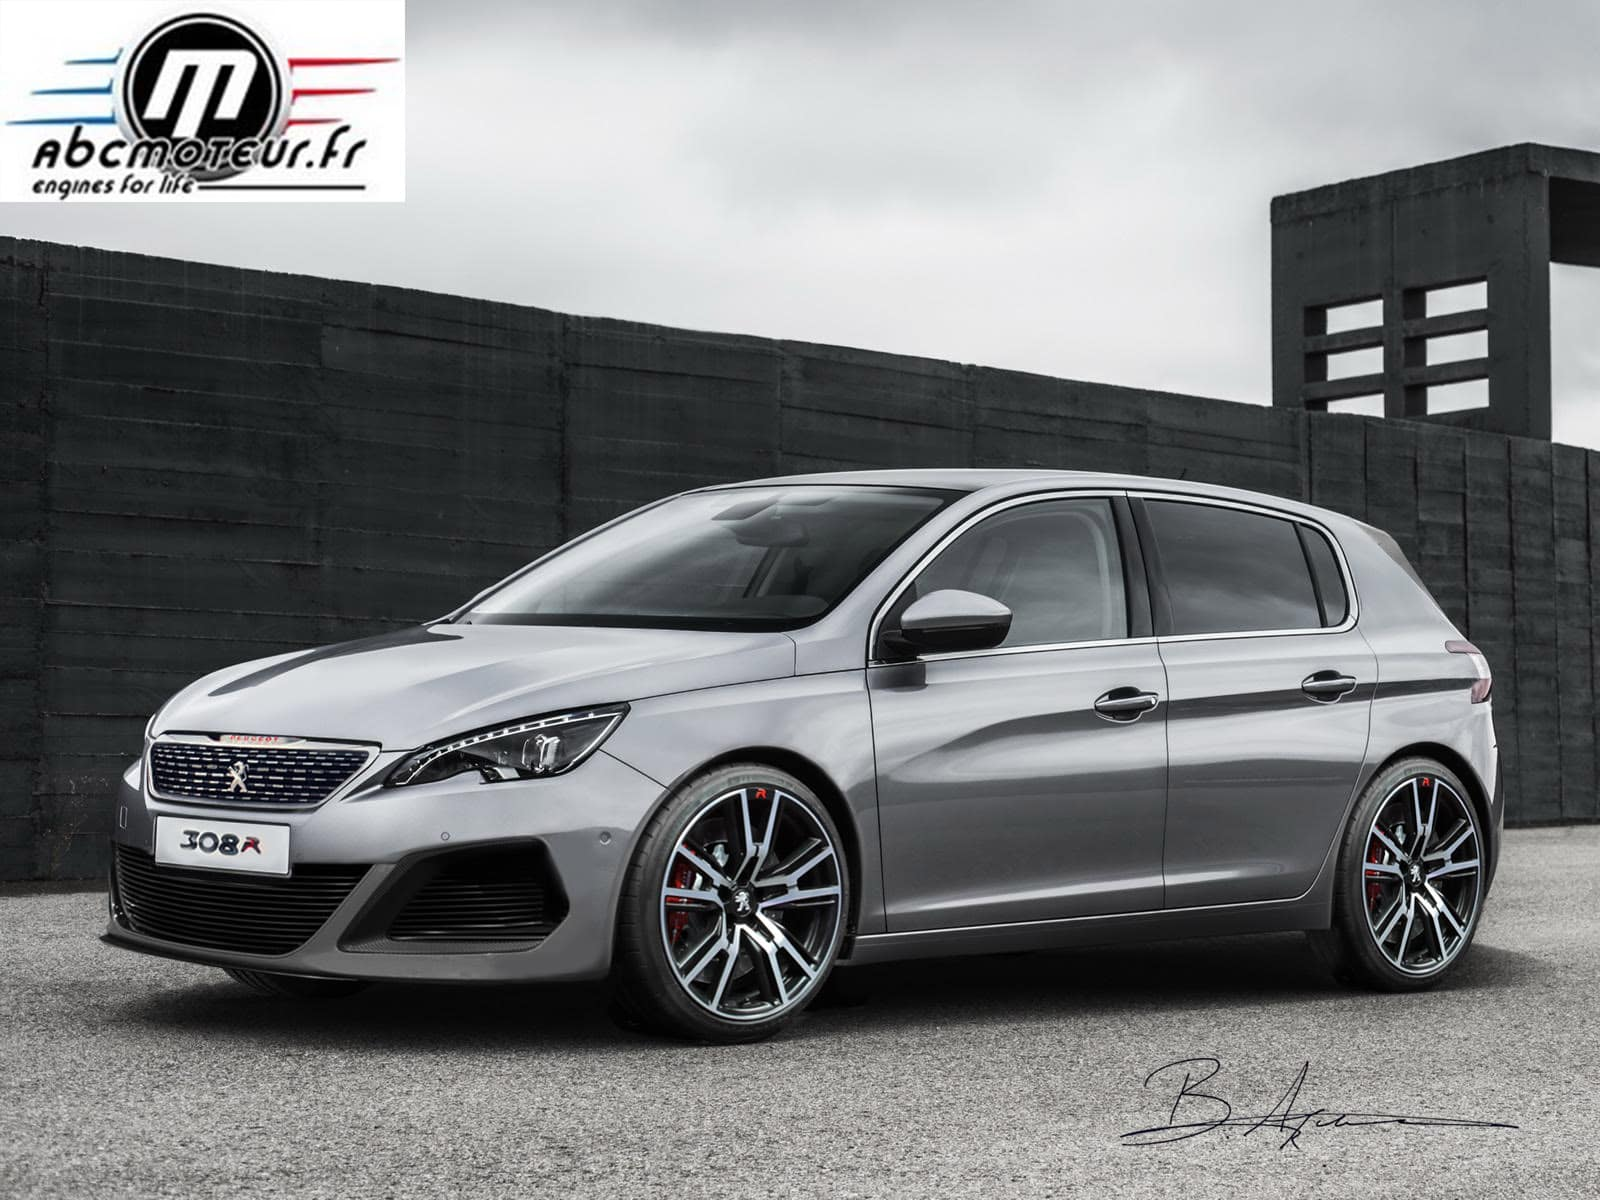 la commercialisation de la peugeot 308 r confirm e. Black Bedroom Furniture Sets. Home Design Ideas